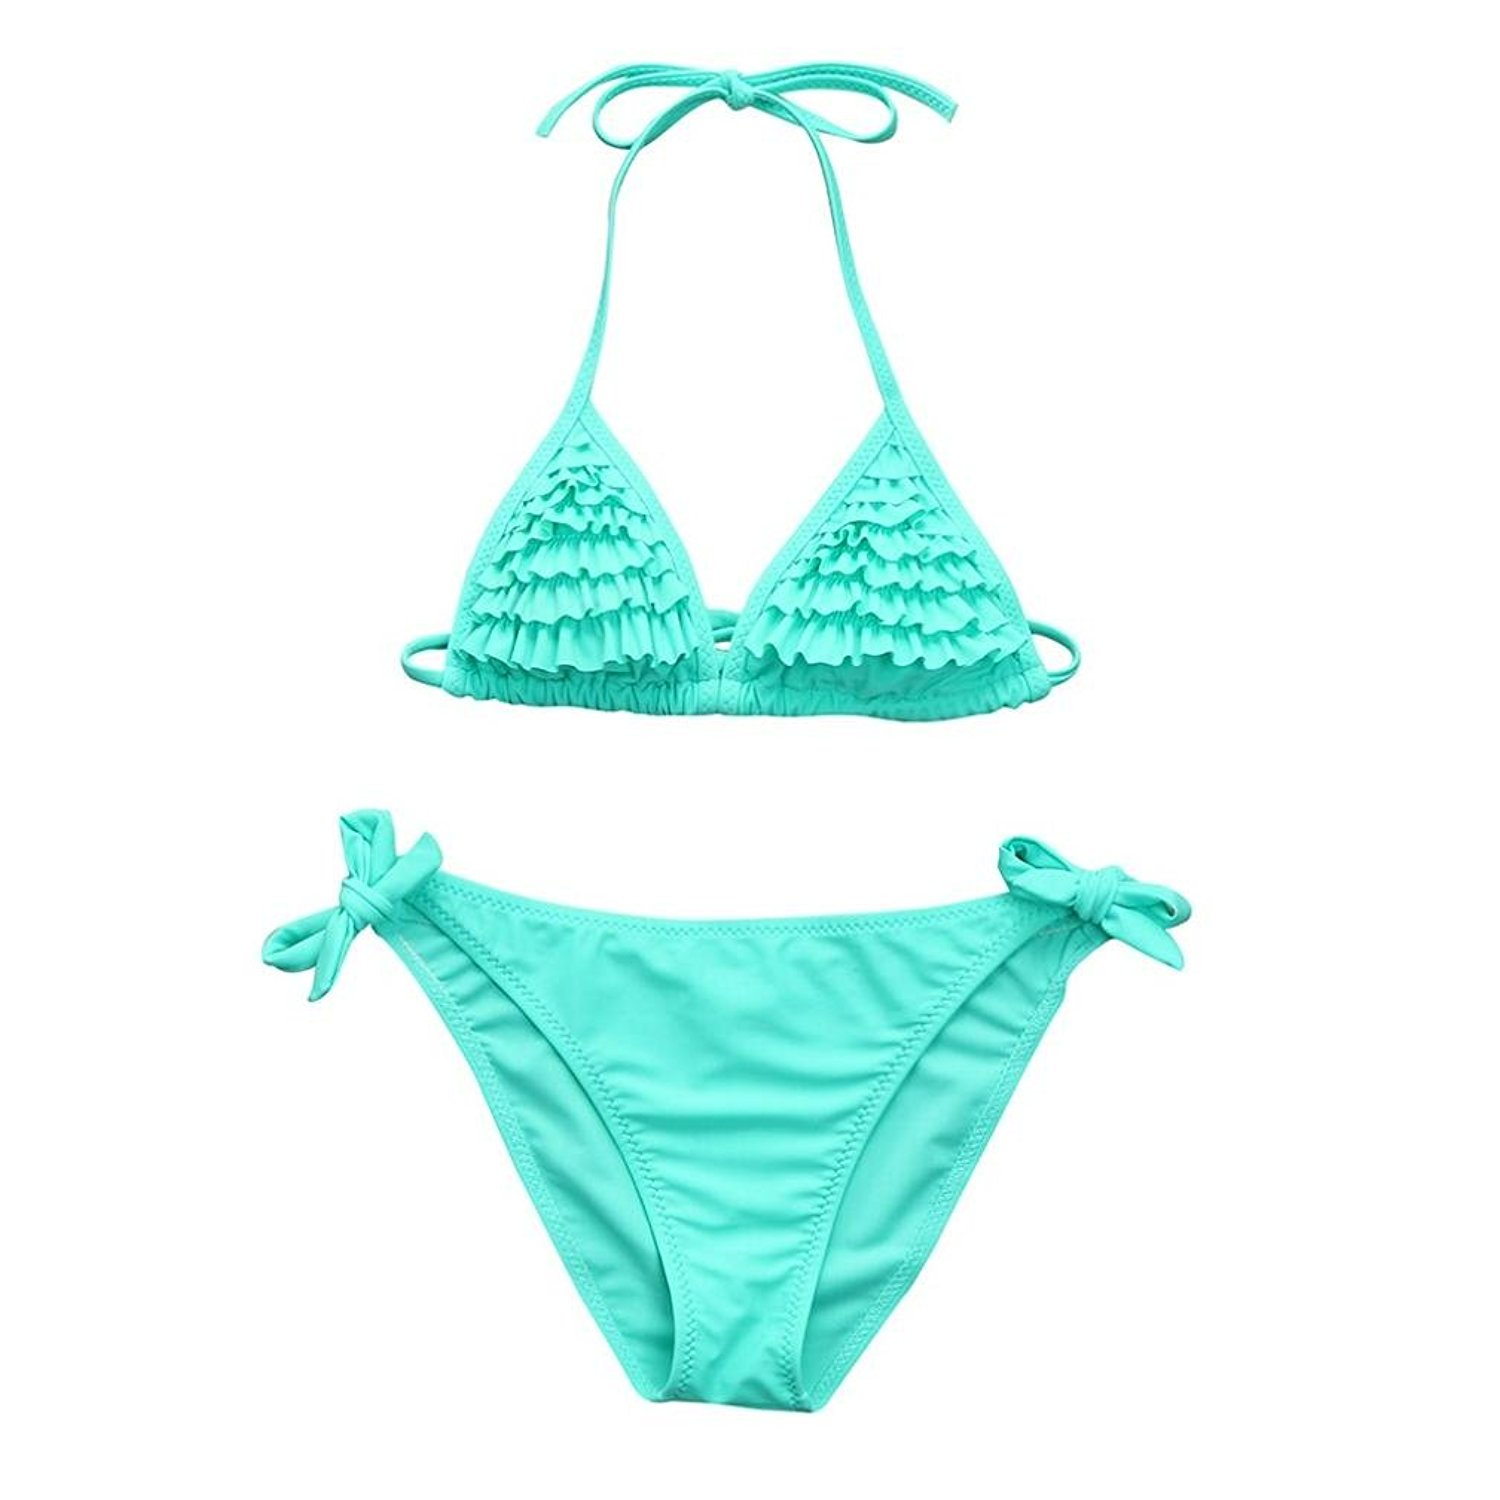 c28bccc6709b4 Get Quotations · Aniywn Swimsuit,Infant Kids Girls Solid Color Multi-Tiered  Flounce Ruffles Adjustable Swimwear Swimsuit